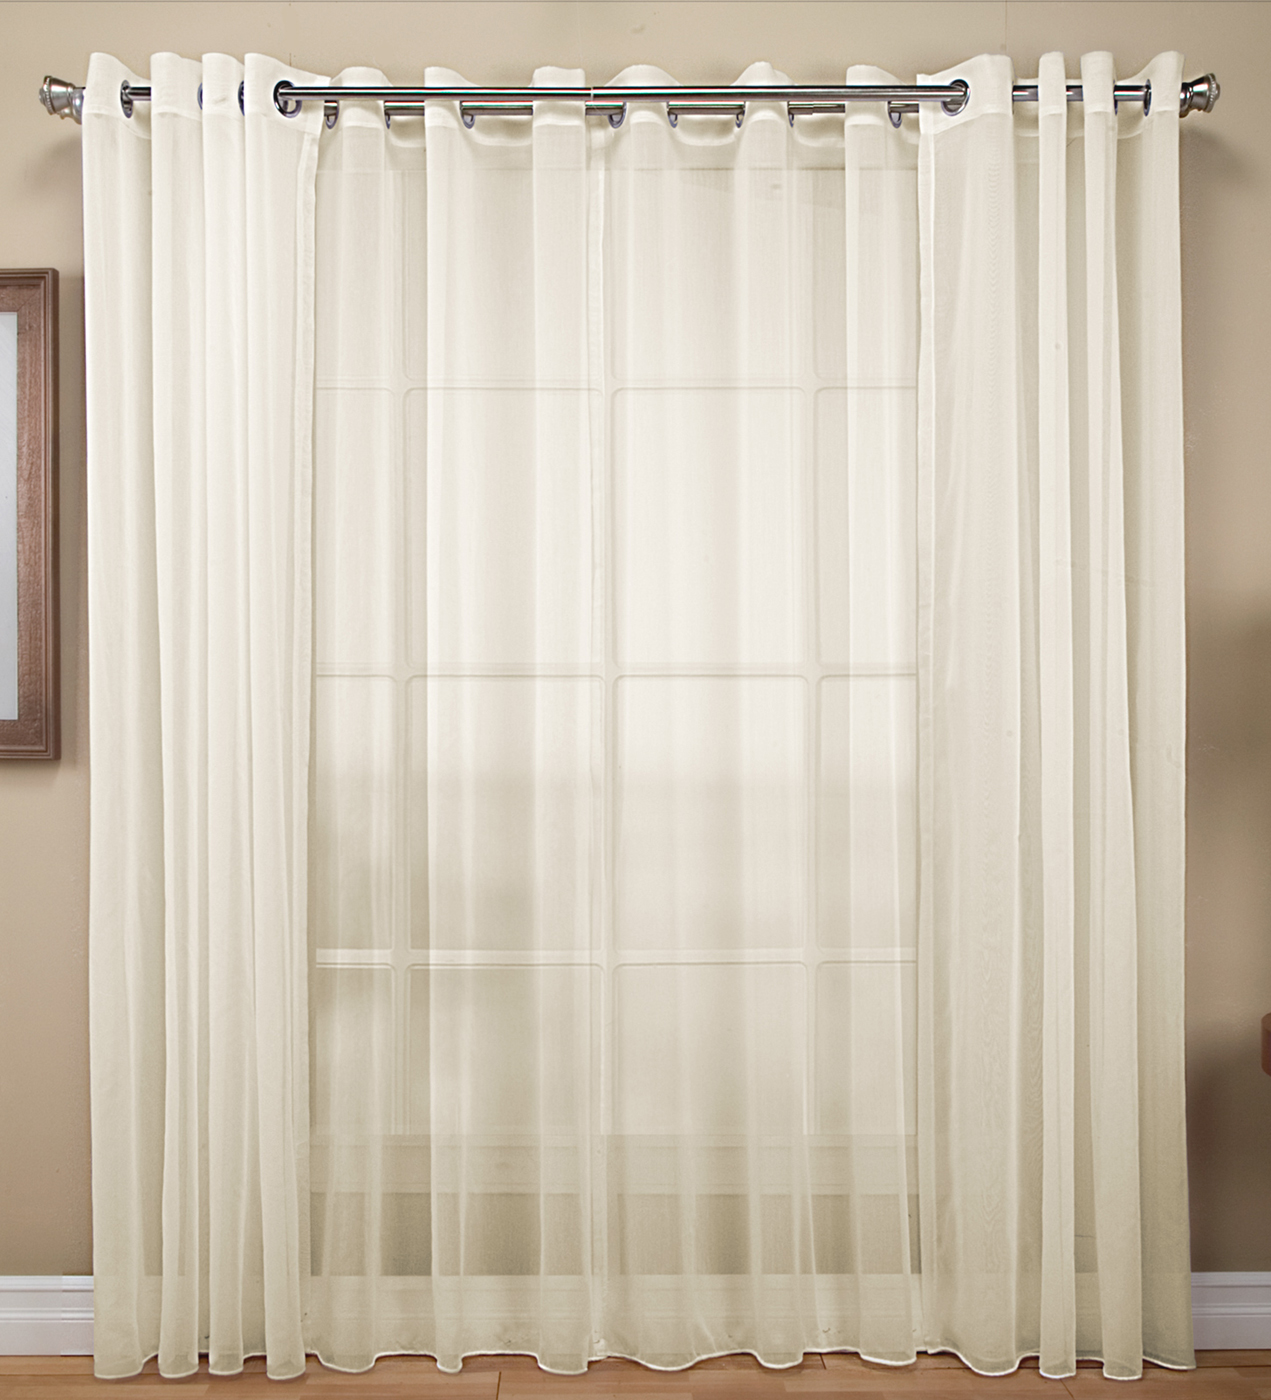 Sheer curtains with bronze grommets curtain menzilperdenet for Grommet curtains with sheers